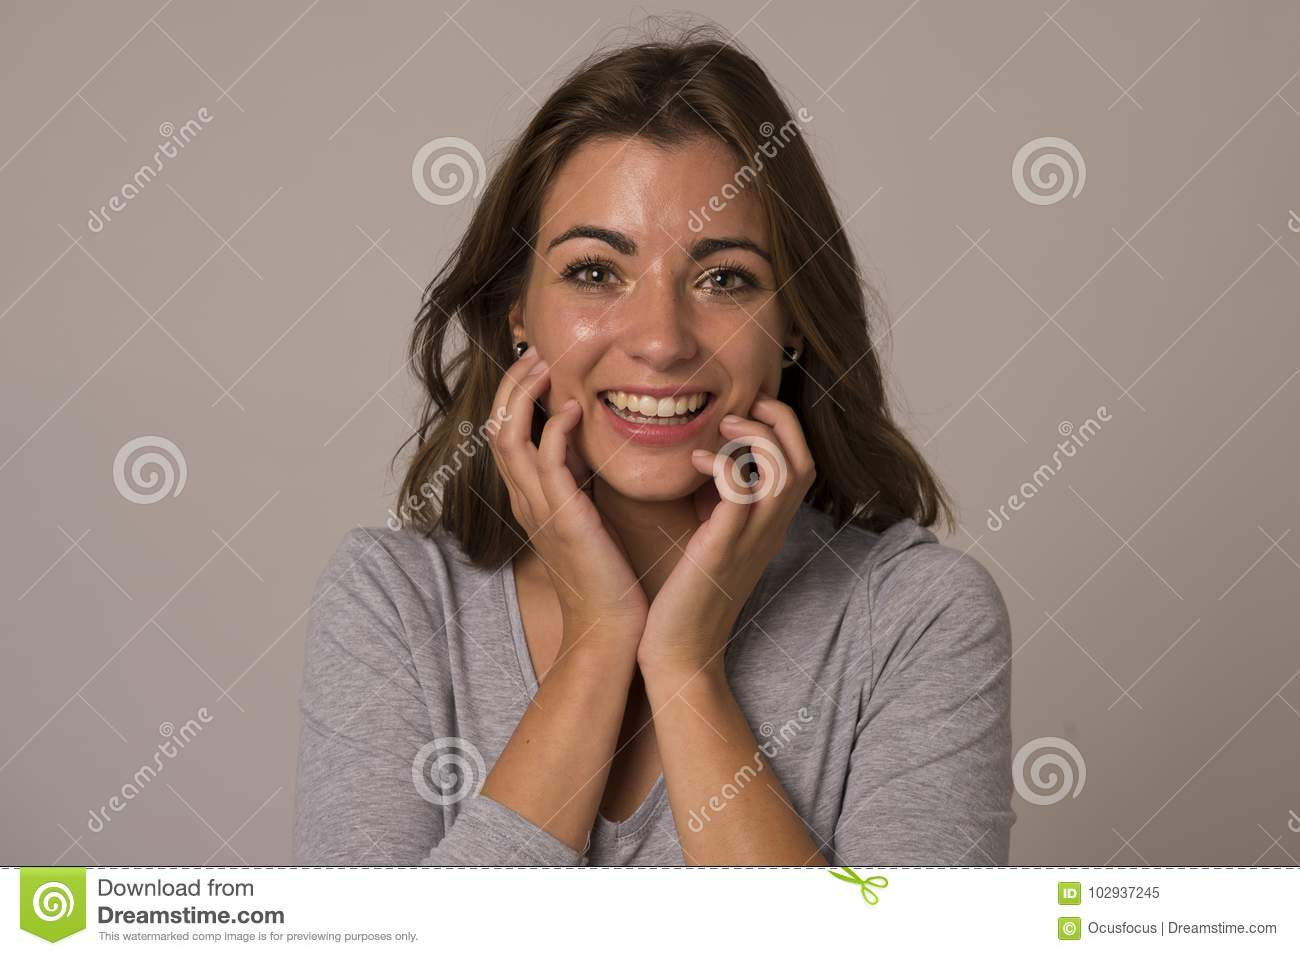 Young attractive and beautiful woman screaming excited and happy in nice shock and surprise showing positive and fun